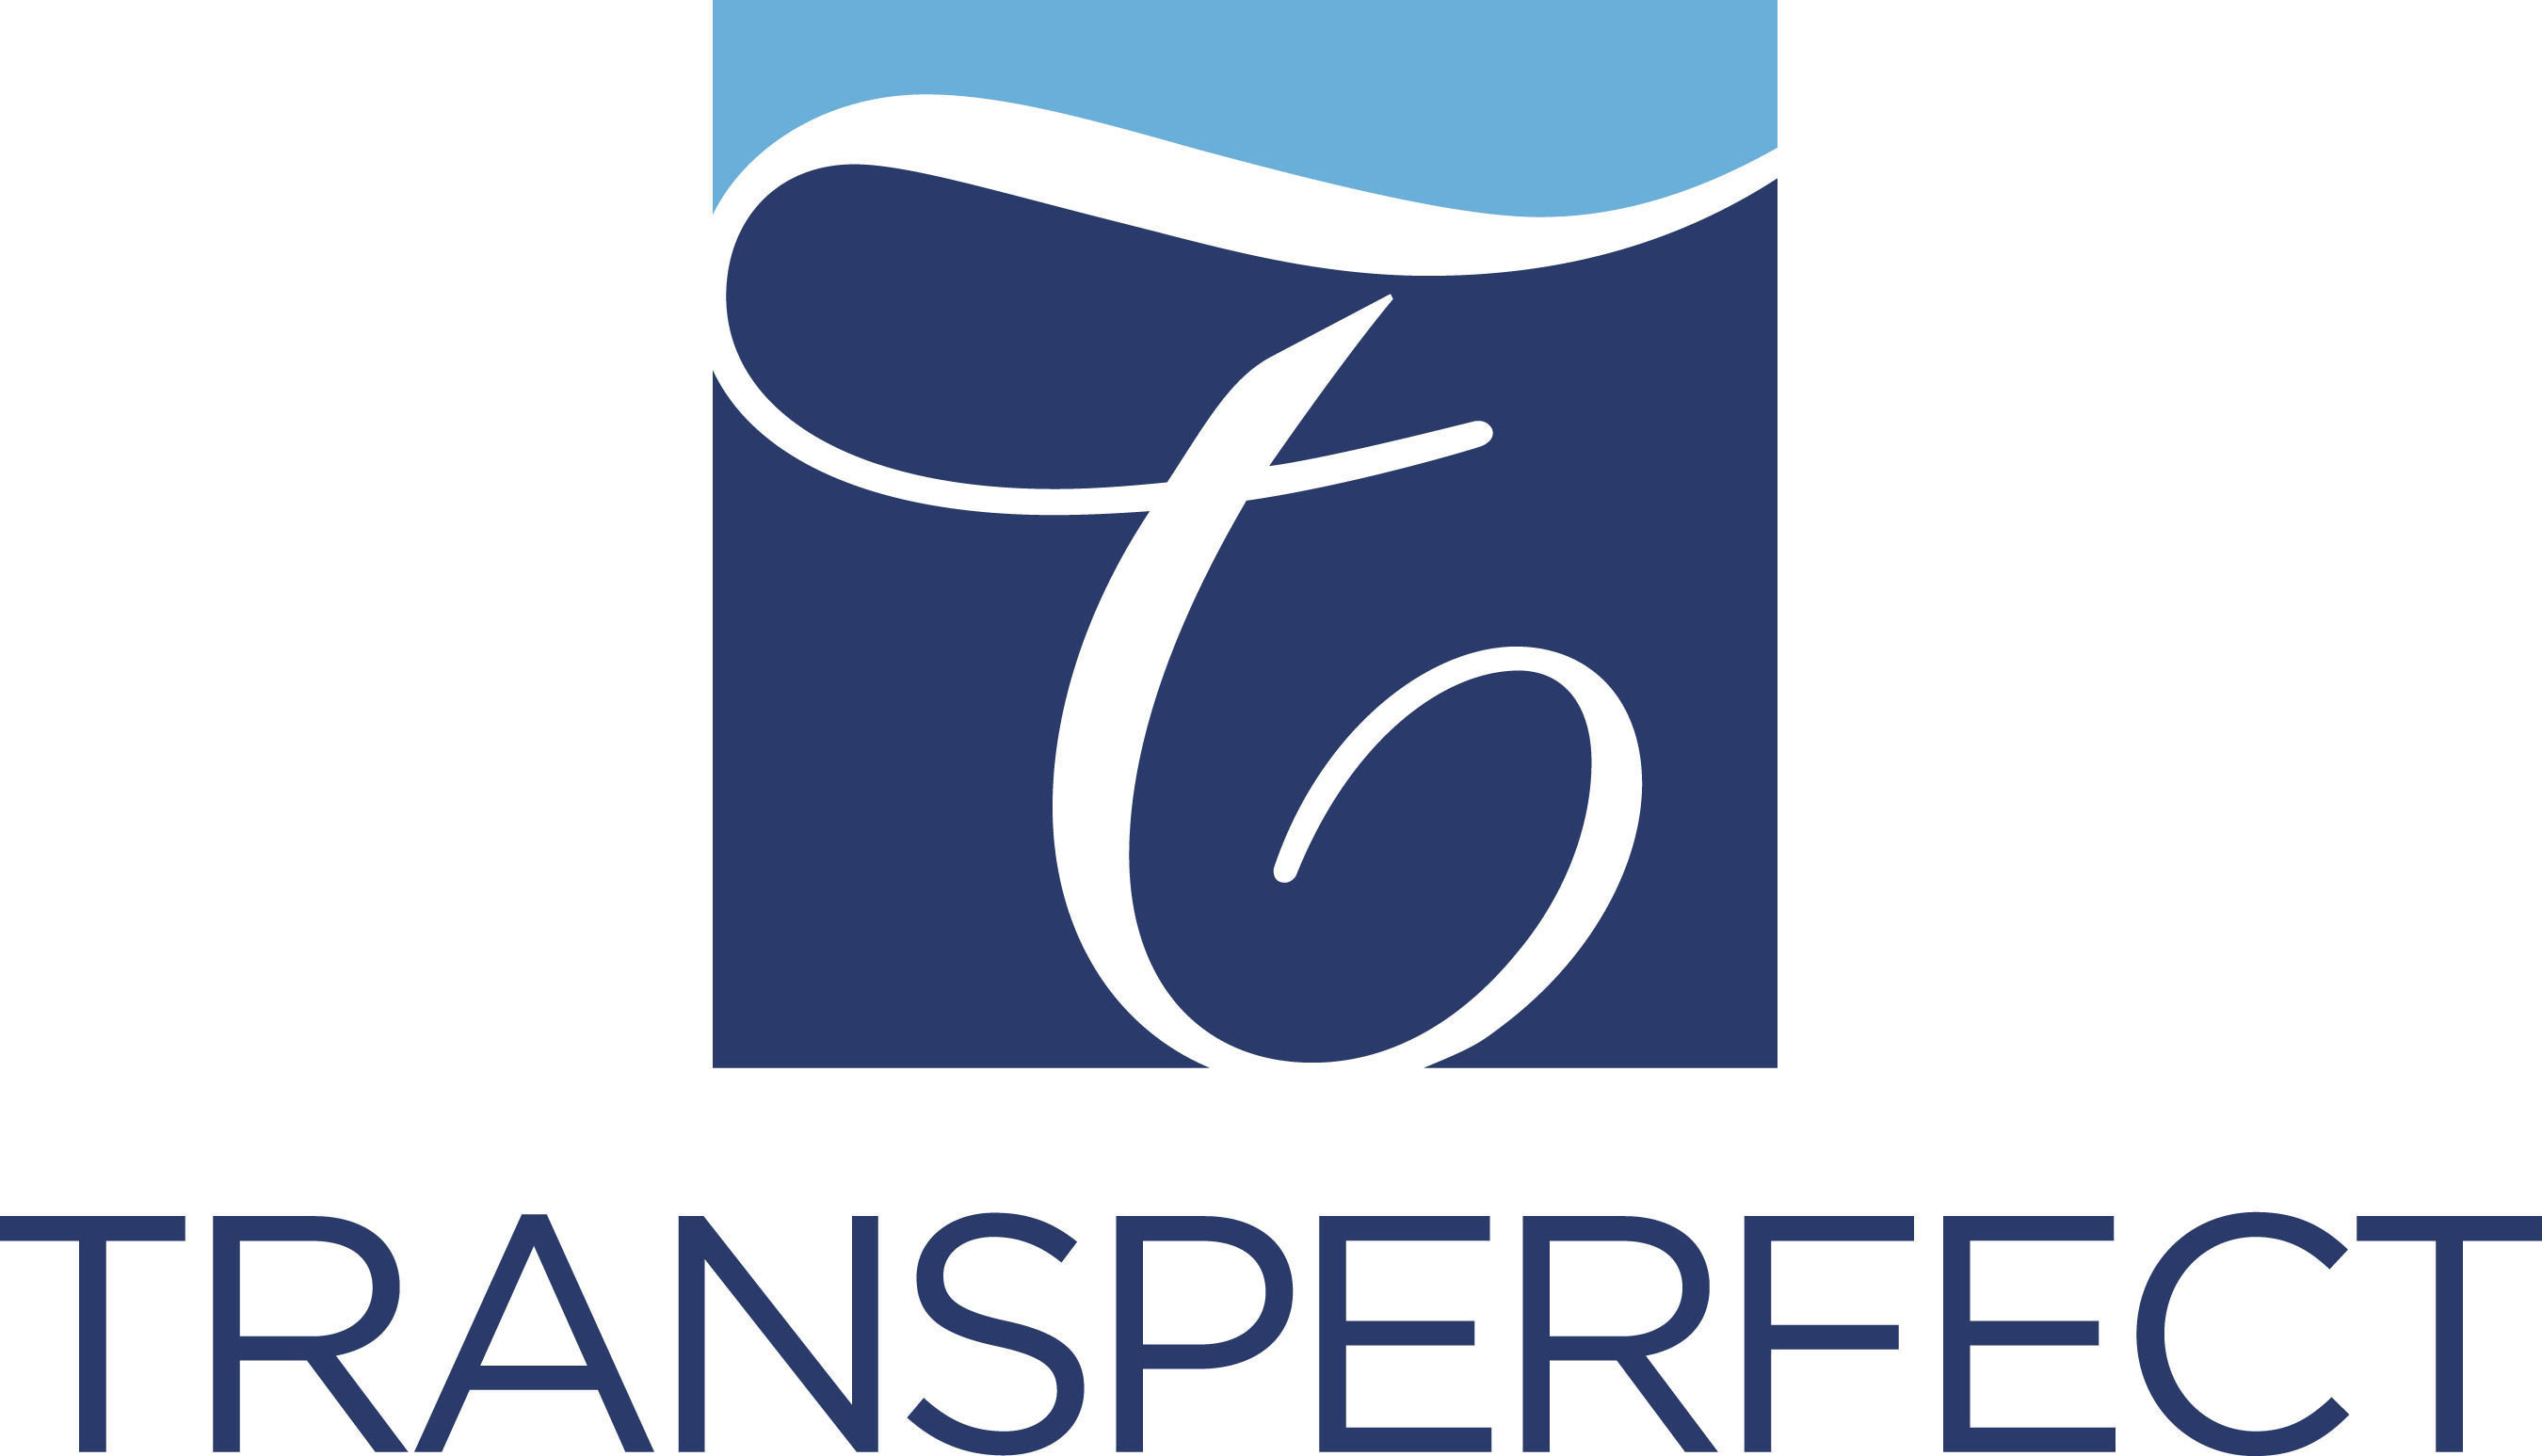 TransPerfect Named to the 2016 Inc. 5000 List of Fastest-Growing Private Companies in America